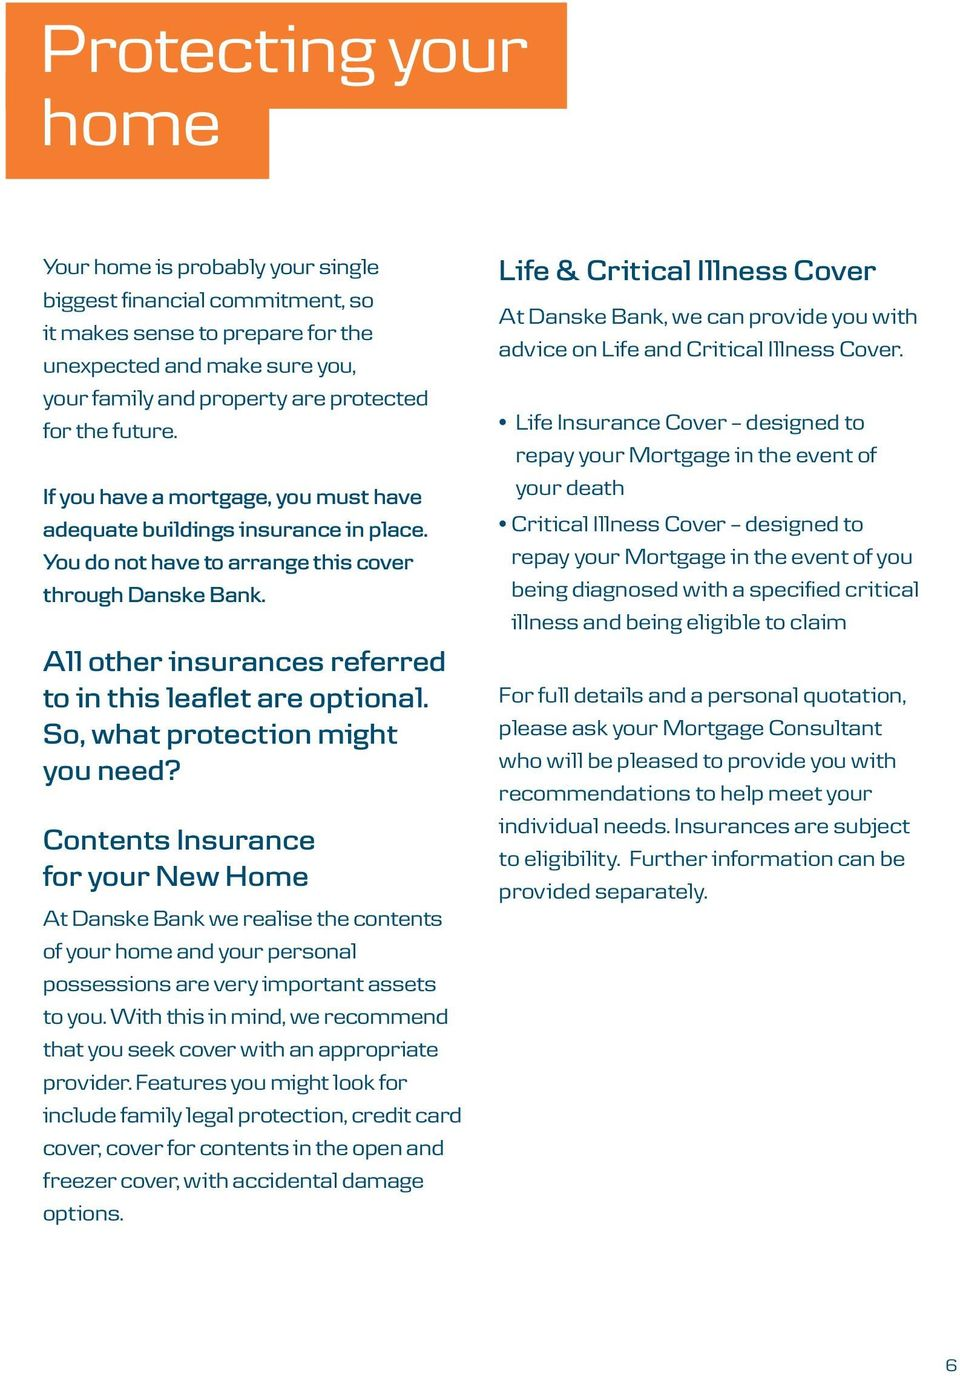 All other insurances referred to in this leaflet are optional. So, what protection might you need?